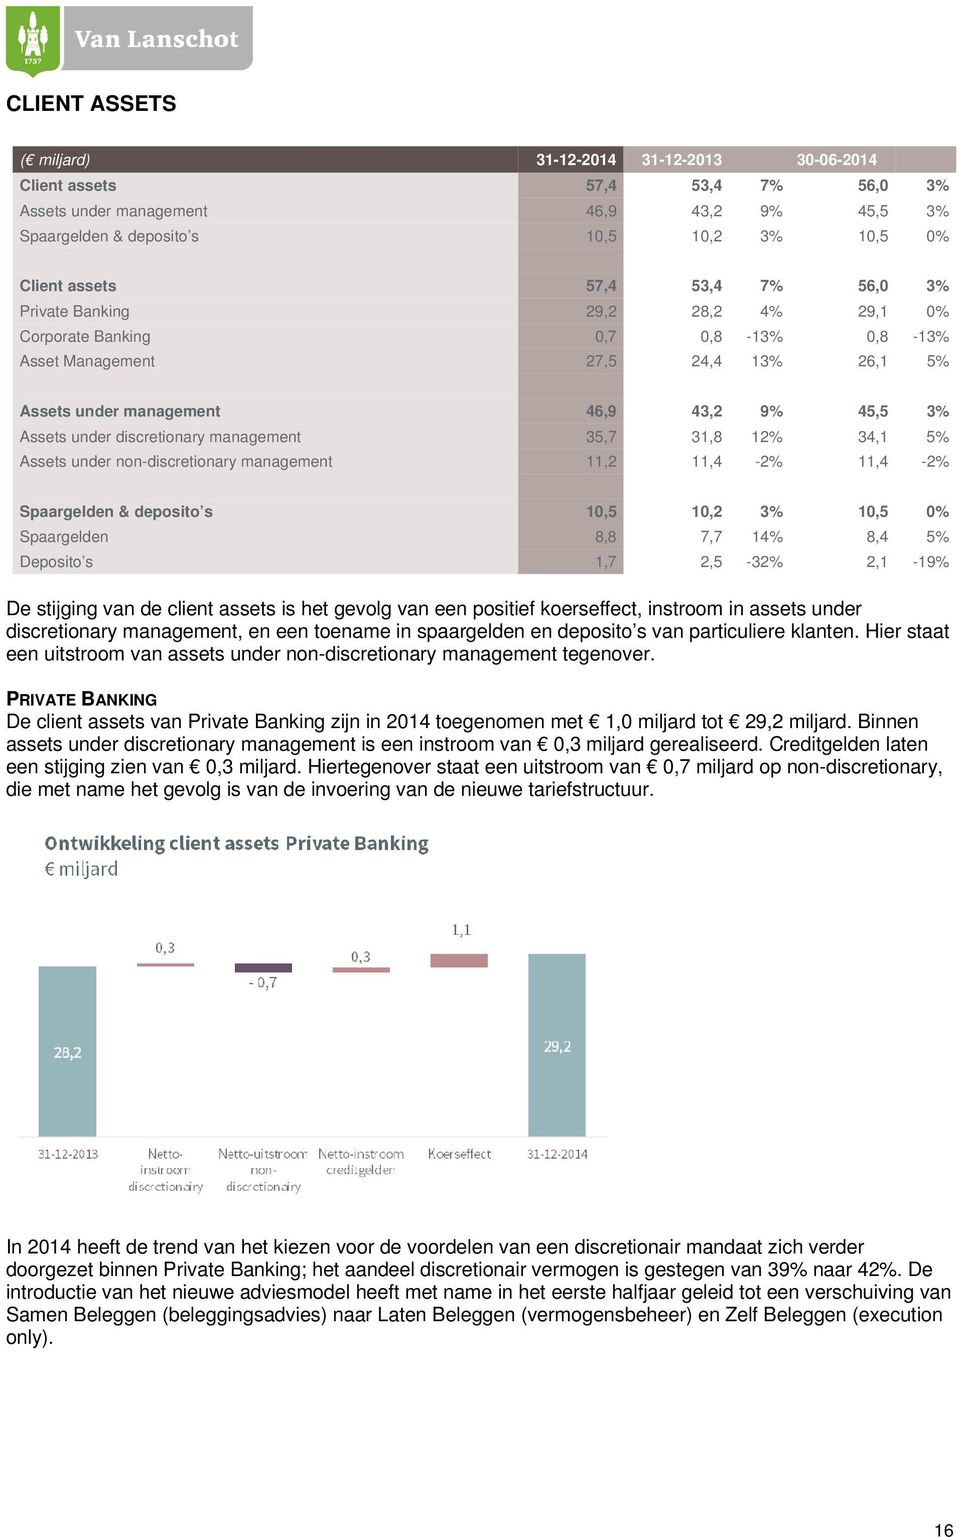 discretionary management 35,7 31,8 12% 34,1 5% Assets under non-discretionary management 11,2 11,4-2% 11,4-2% Spaargelden & deposito s 10,5 10,2 3% 10,5 0% Spaargelden 8,8 7,7 14% 8,4 5% Deposito s